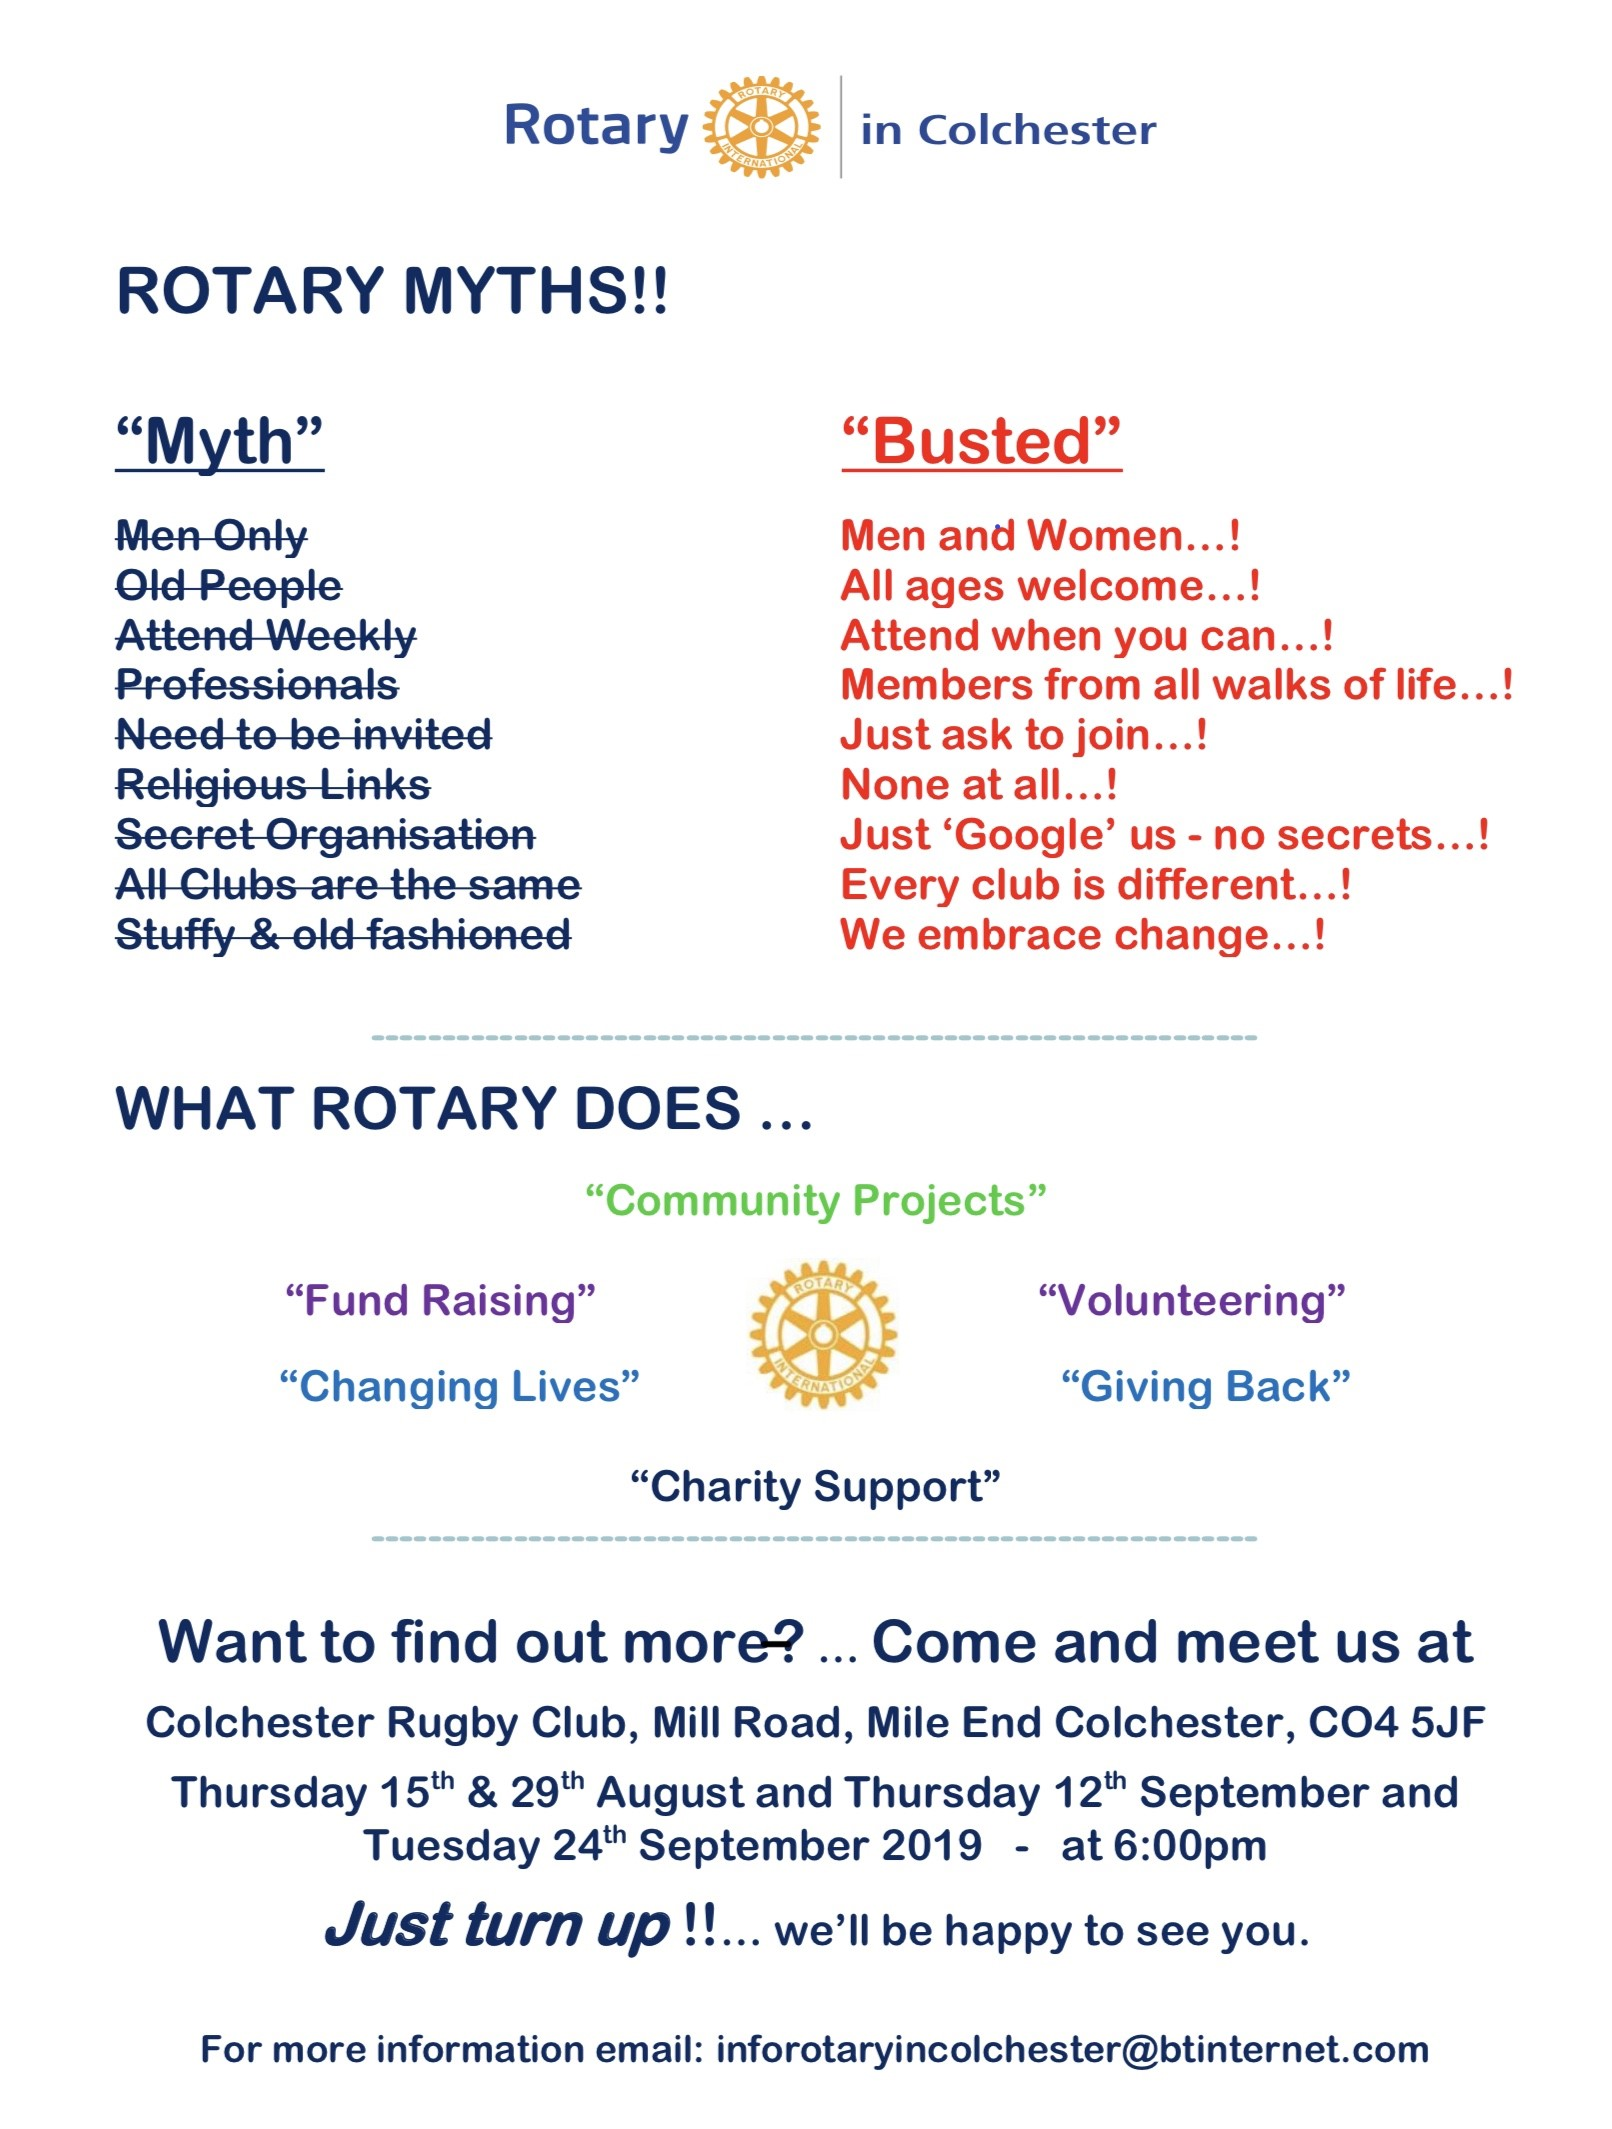 New Rotary Club for Colchester